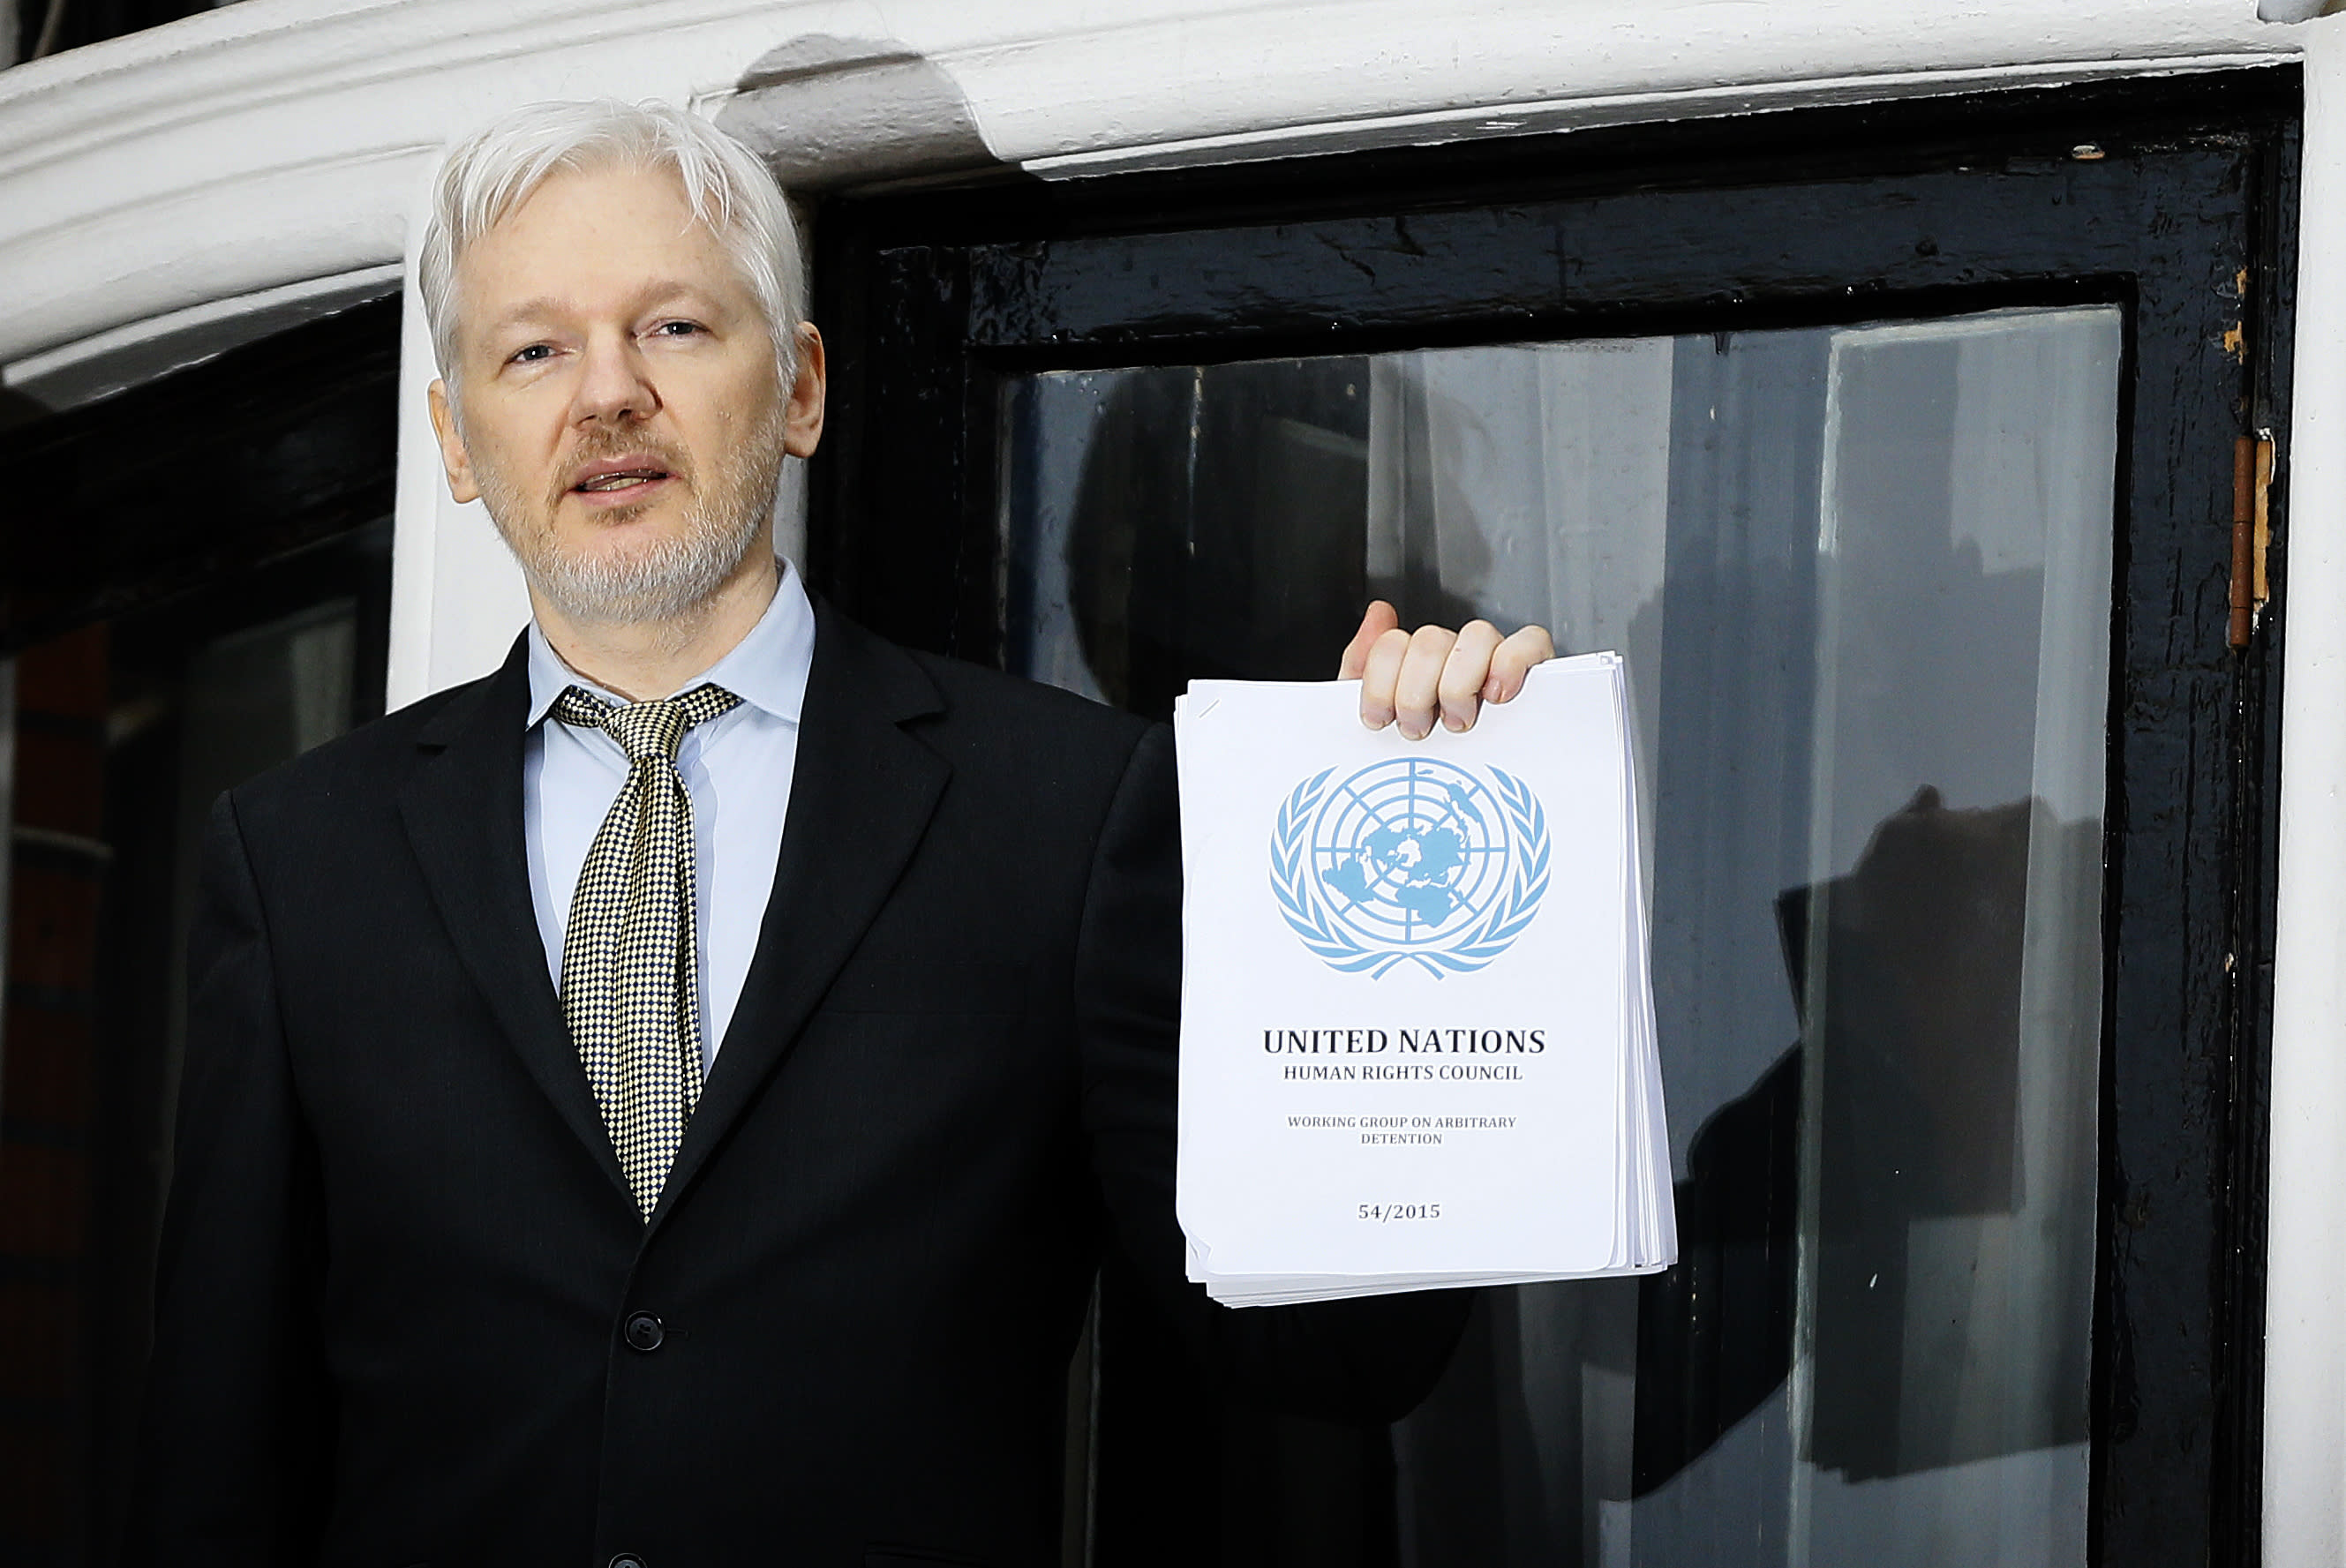 """FILE - In this Feb. 5, 2016, file photo WikiLeaks founder Julian Assange speaks on the balcony of the Ecuadorean Embassy in London. President Barack Obama's decision to commute Chelsea Manning's sentence quickly brought fresh attention to another figure involved in the Army leaker's case: Julian Assange. In a tweet in early January 2017, Assange's anti-secrecy site WikiLeaks wrote, """"If Obama grants Manning clemency Assange will agree to US extradition despite clear unconstitutionality of DoJ case."""" (AP Photo/Kirsty Wigglesworth, File)"""